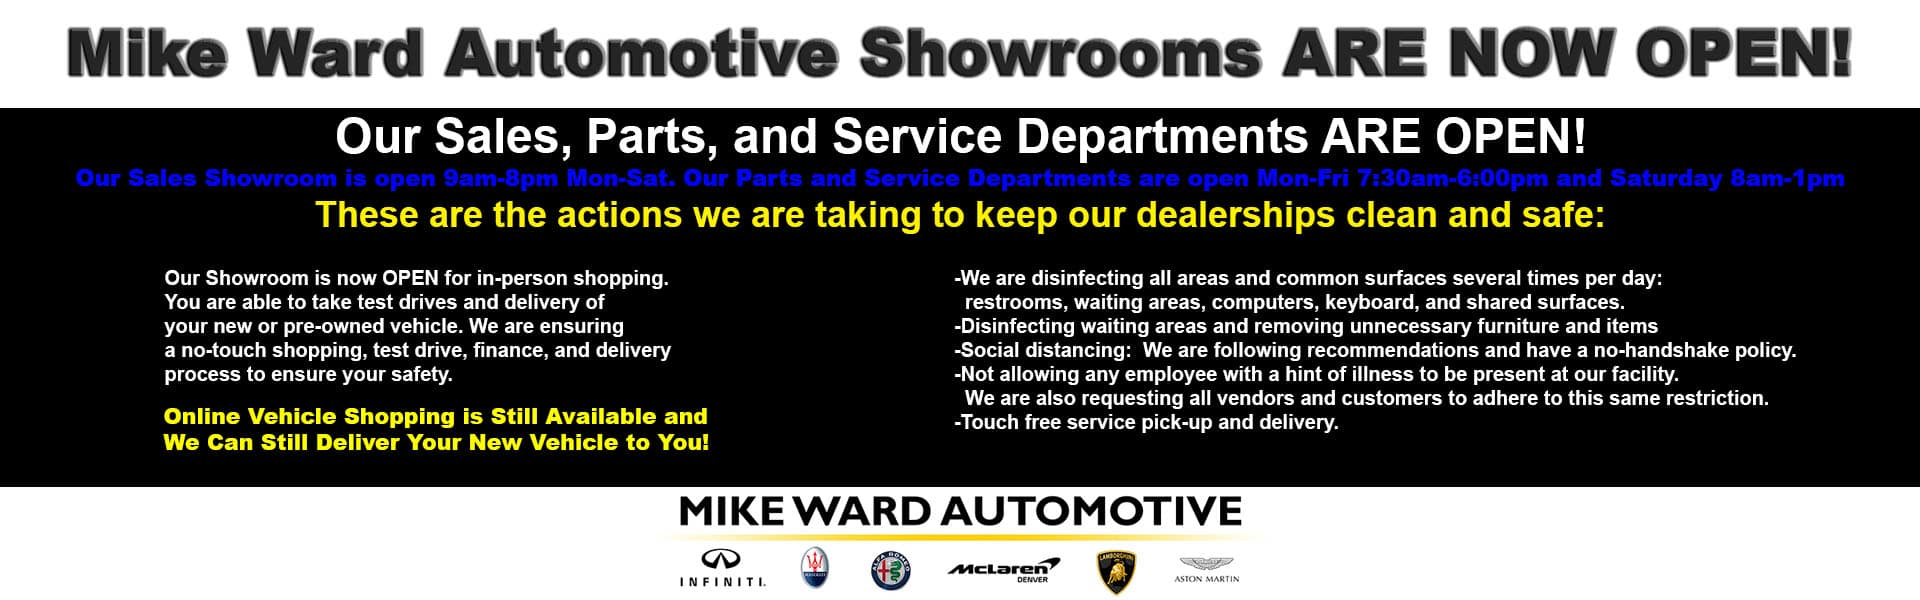 Mike Ward Showrooms are NOW OPEN!